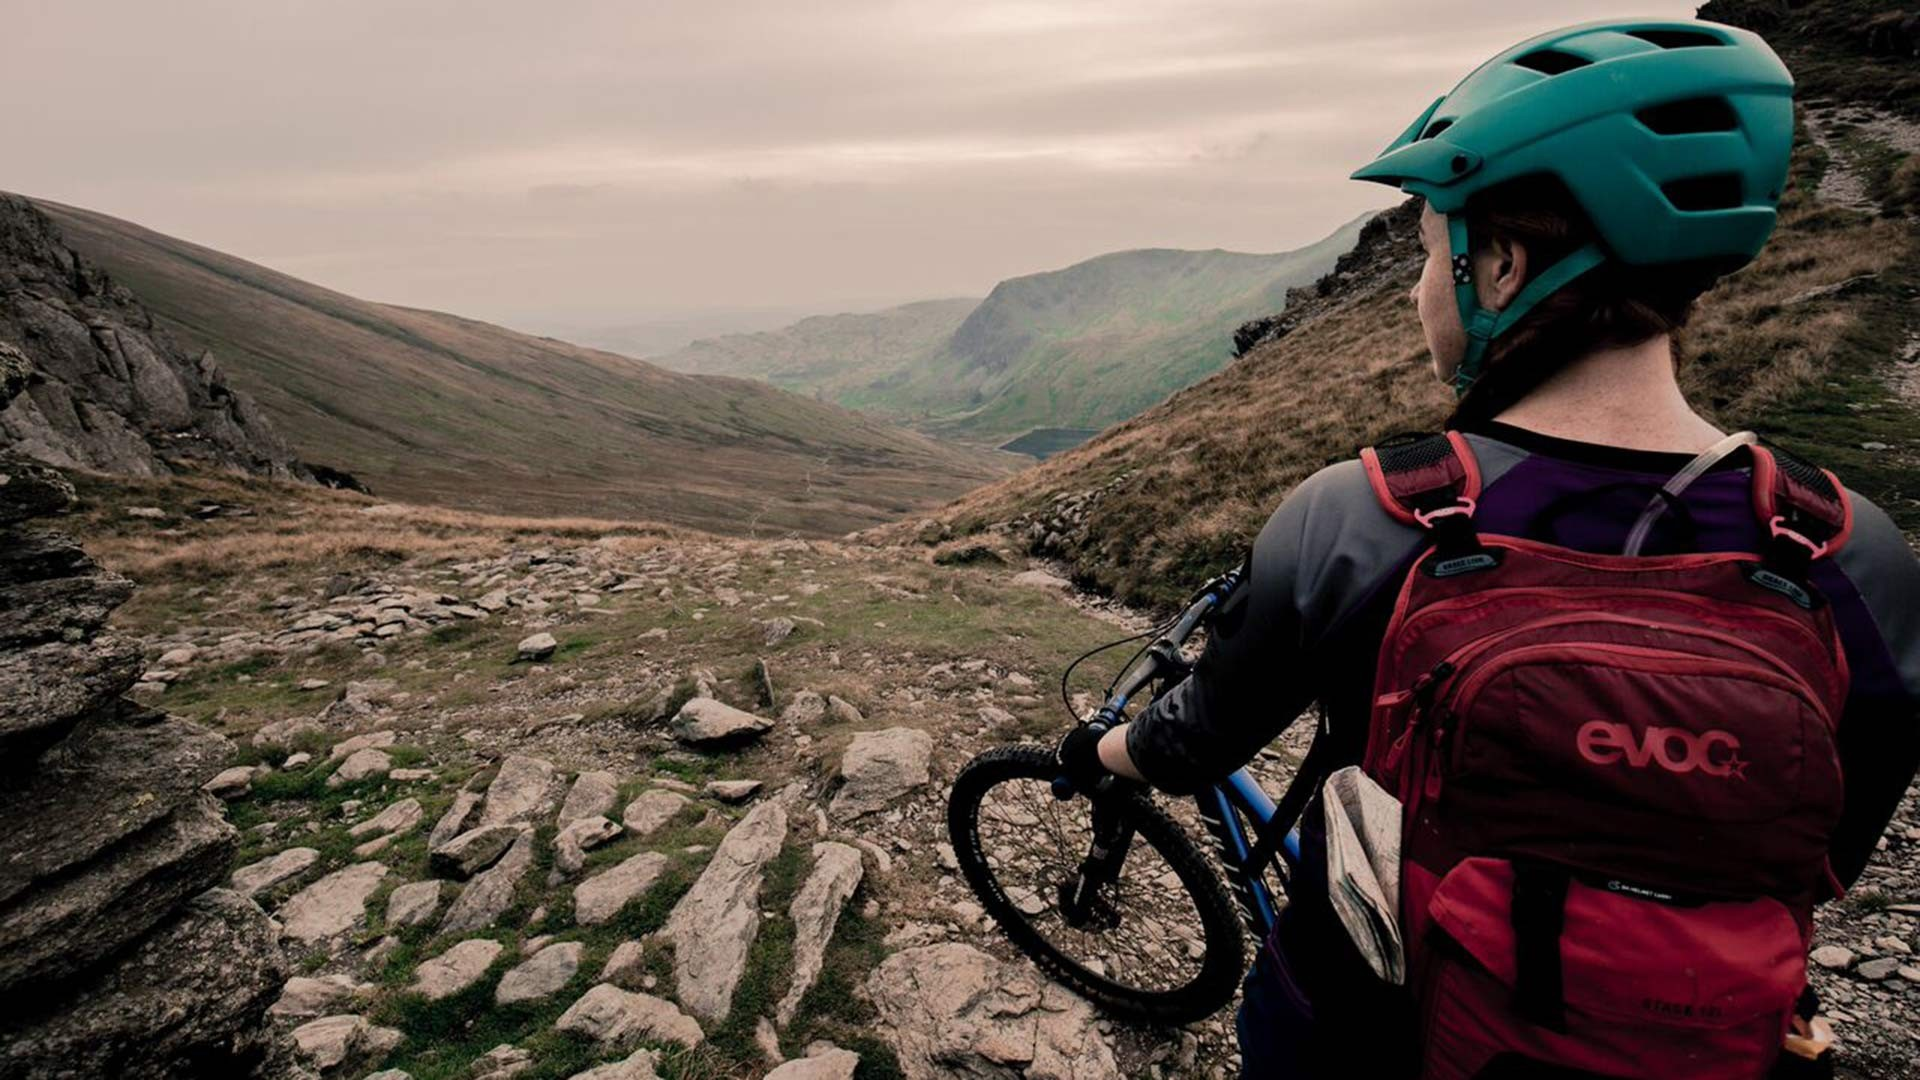 Lastly, just get out there and ride!